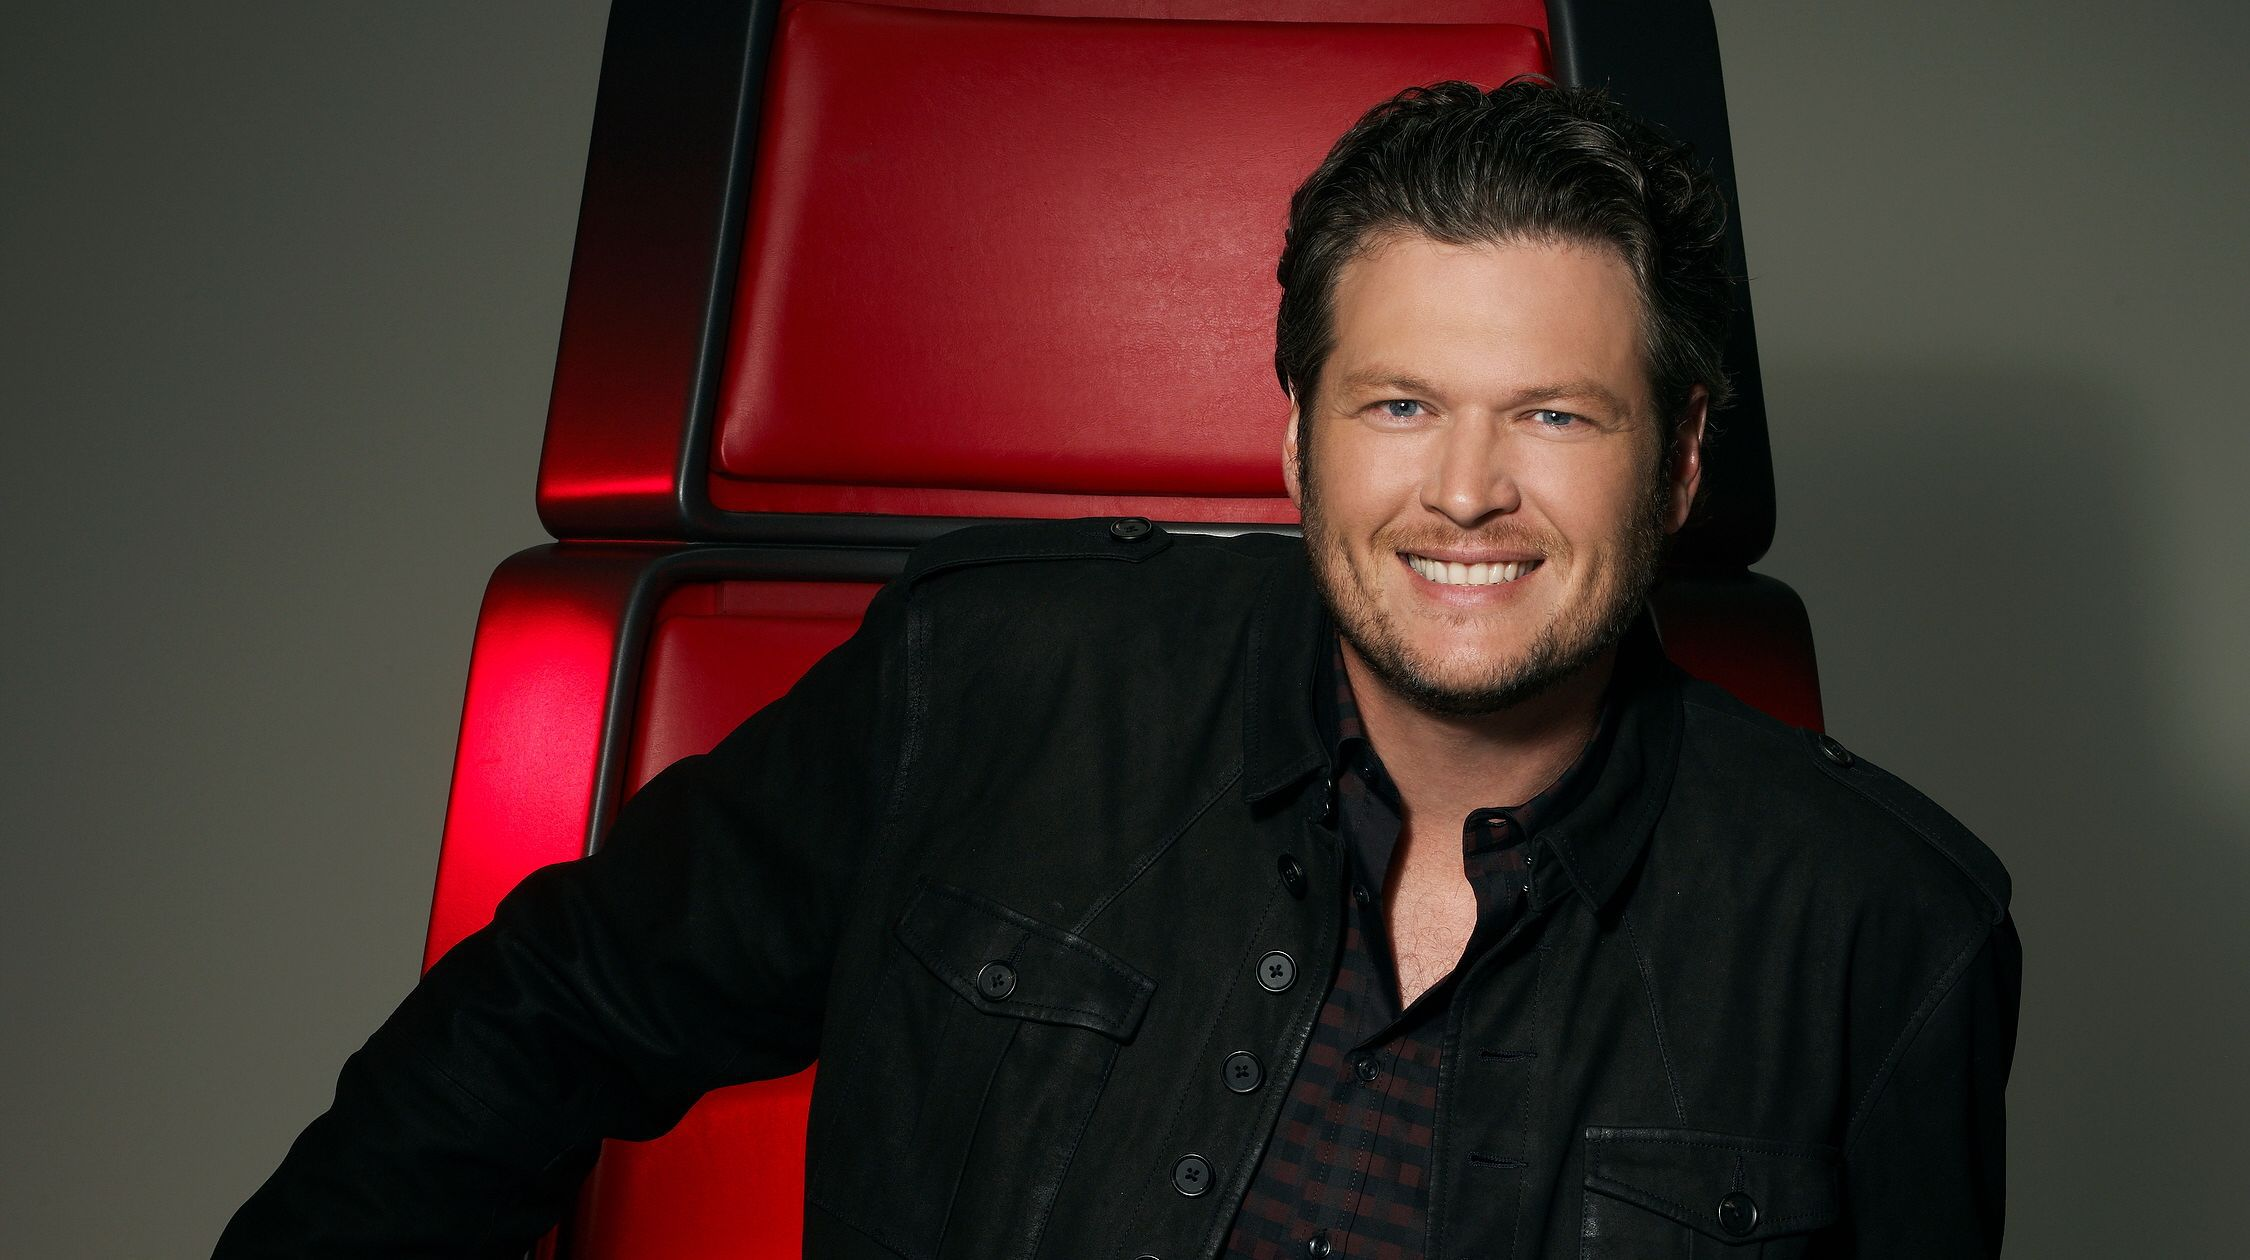 blake shelton Buy blake shelton tickets from the official ticketmastercom site find blake shelton tour schedule, concert details, reviews and photos.